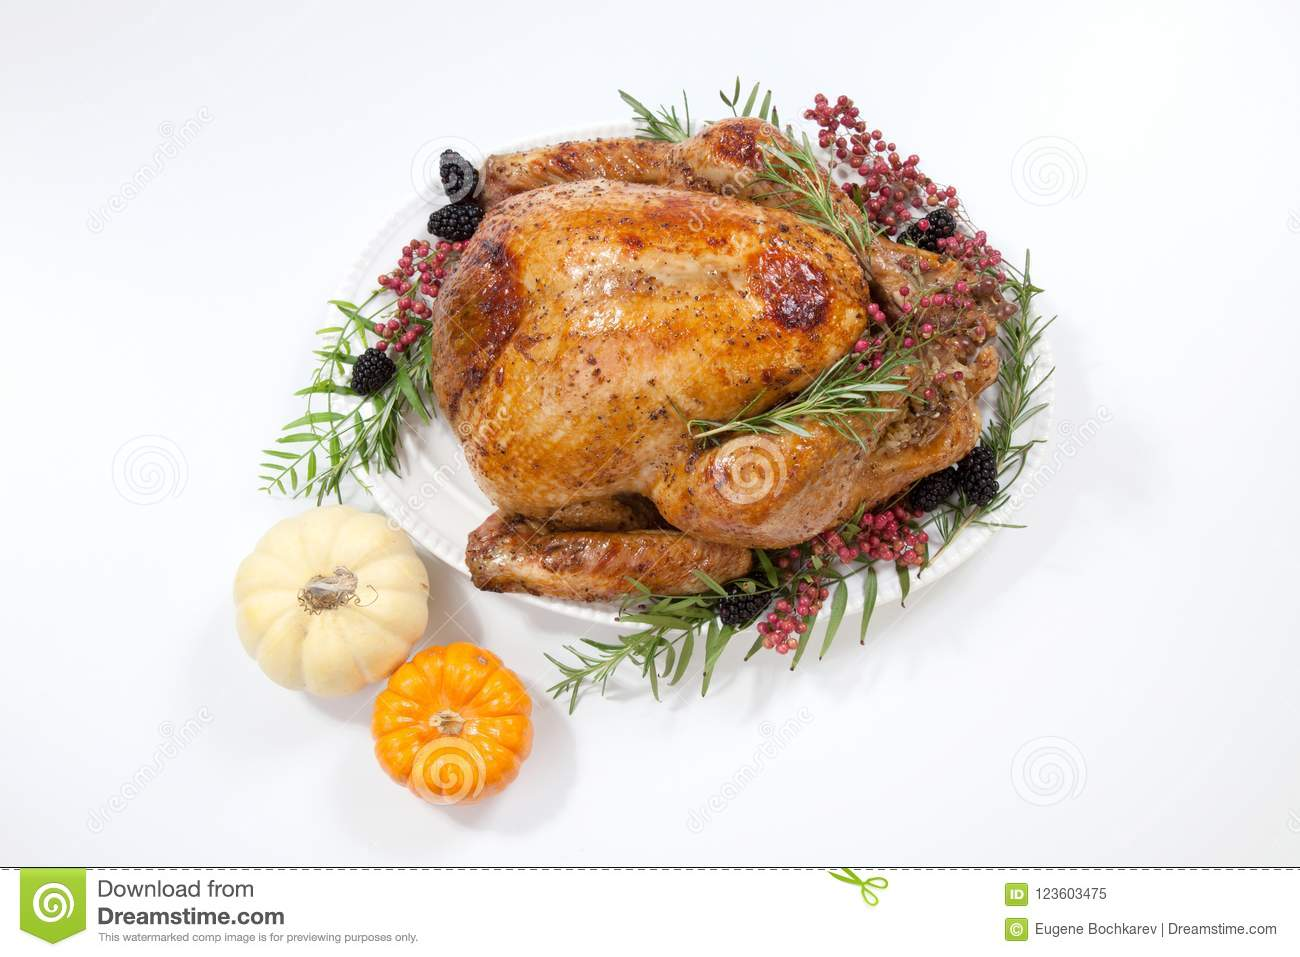 Thanksgiving turkey on white stock image image of cooked turkey download thanksgiving turkey on white stock image image of cooked turkey 123603475 publicscrutiny Image collections